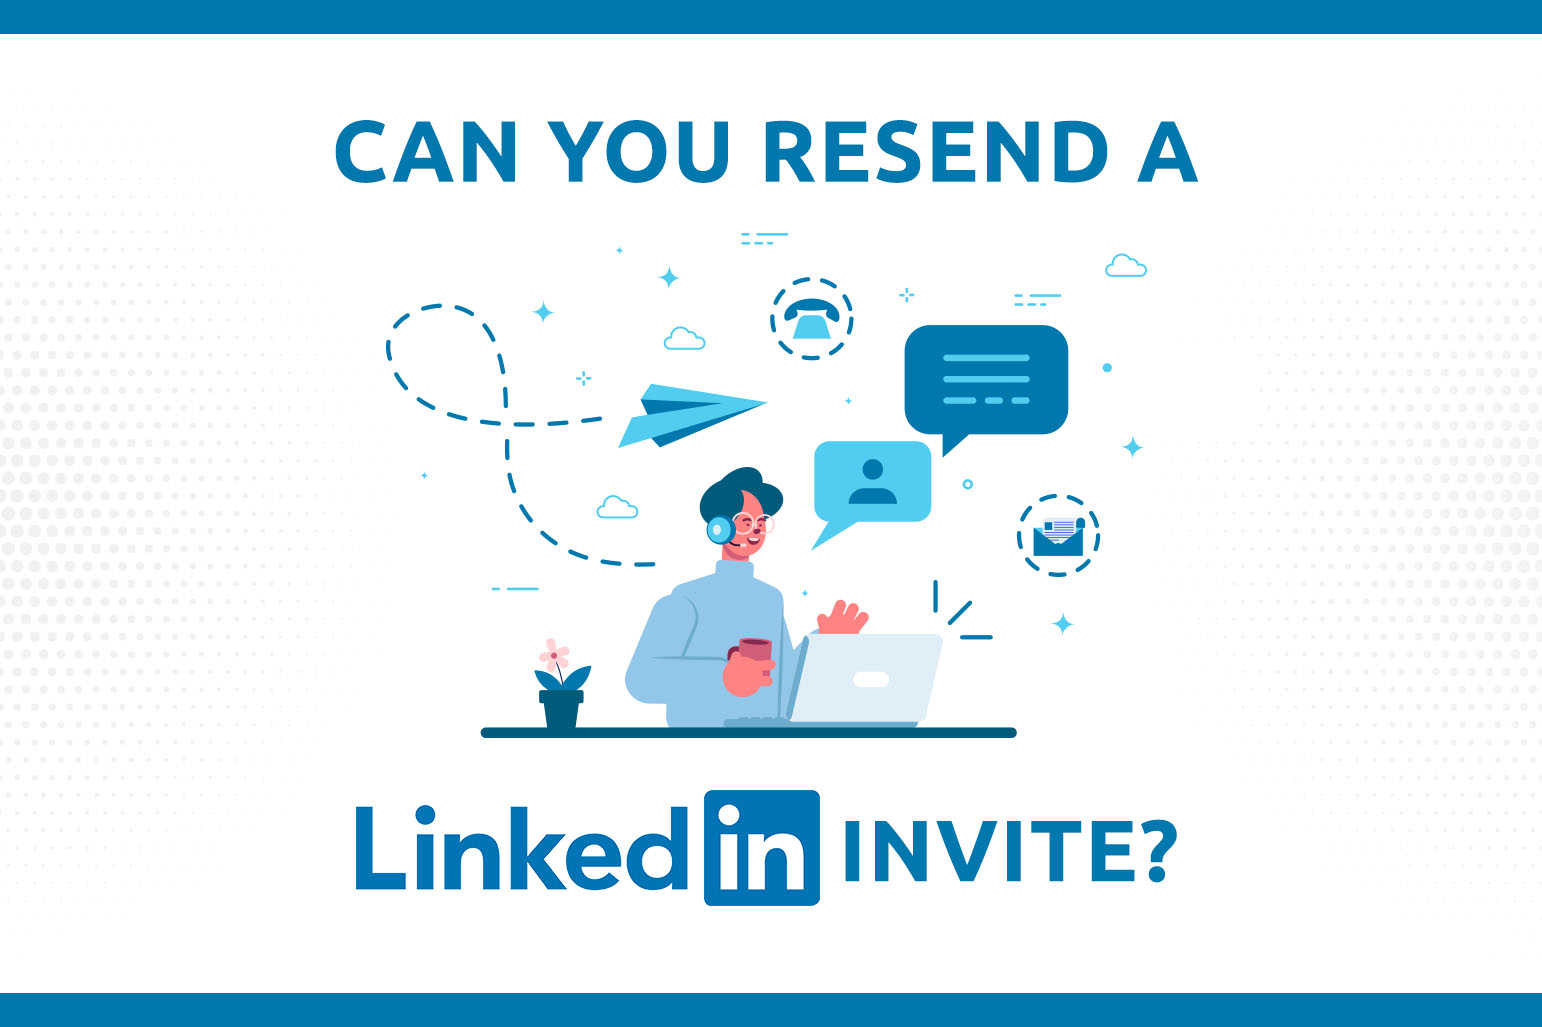 Can You Resend A LinkedIn Invite?